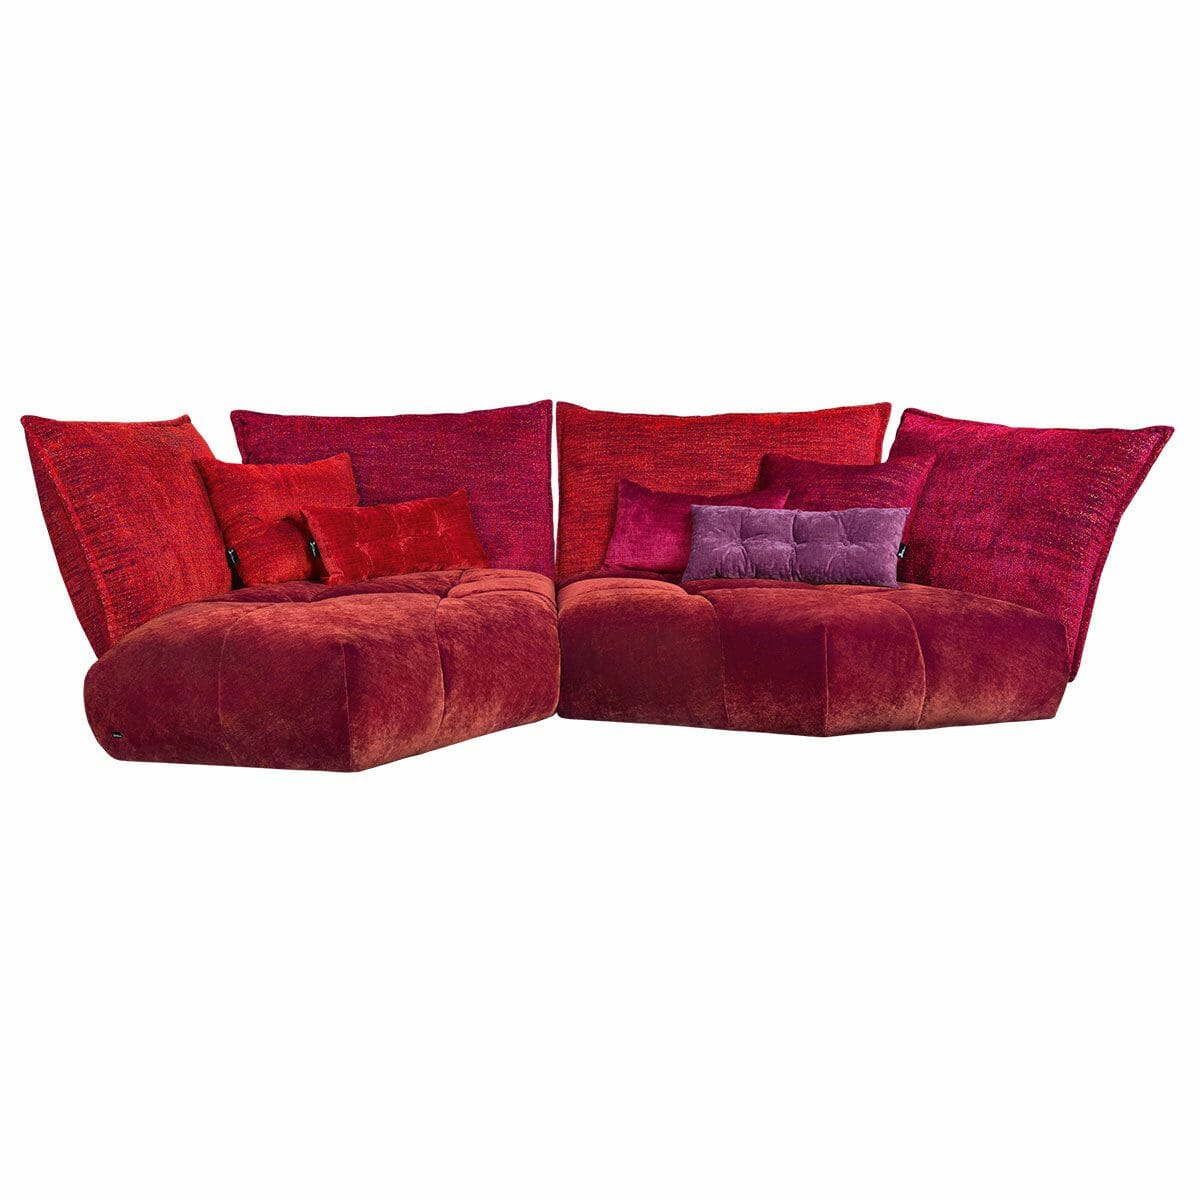 Bretz Matilda Sofa H116li in Berry Mix